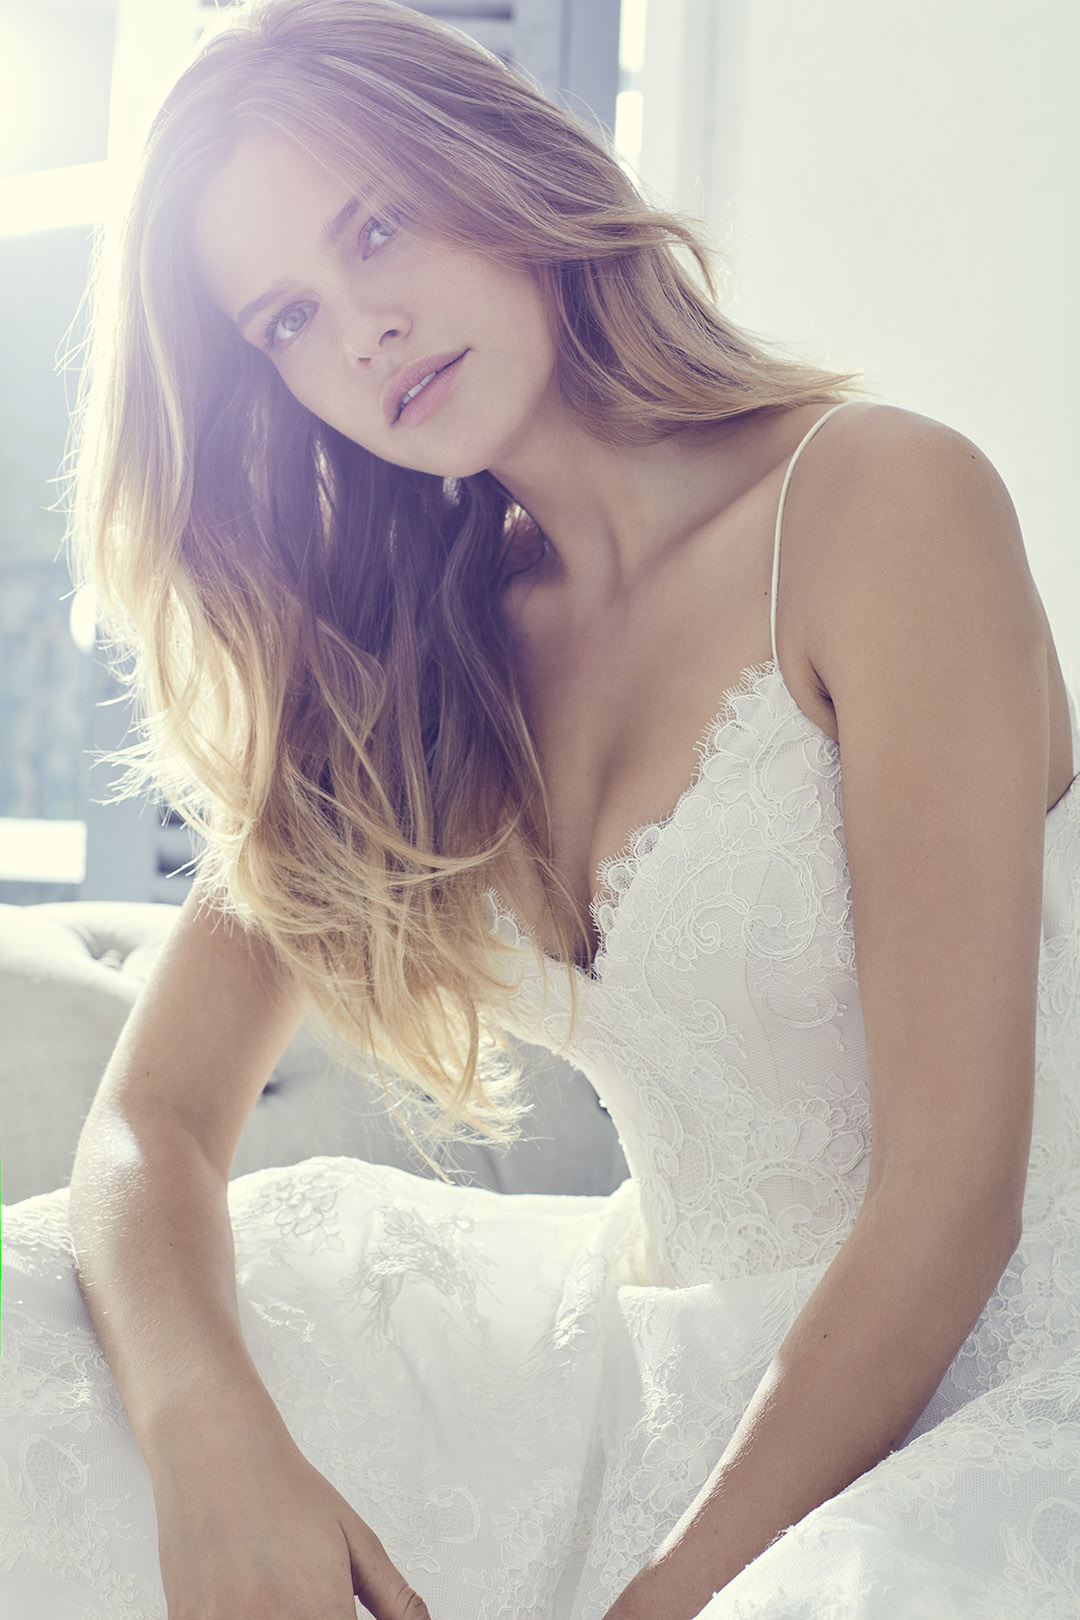 harlow3-wedding-dresses-uk-suzanne-neville-collection-hd-2019